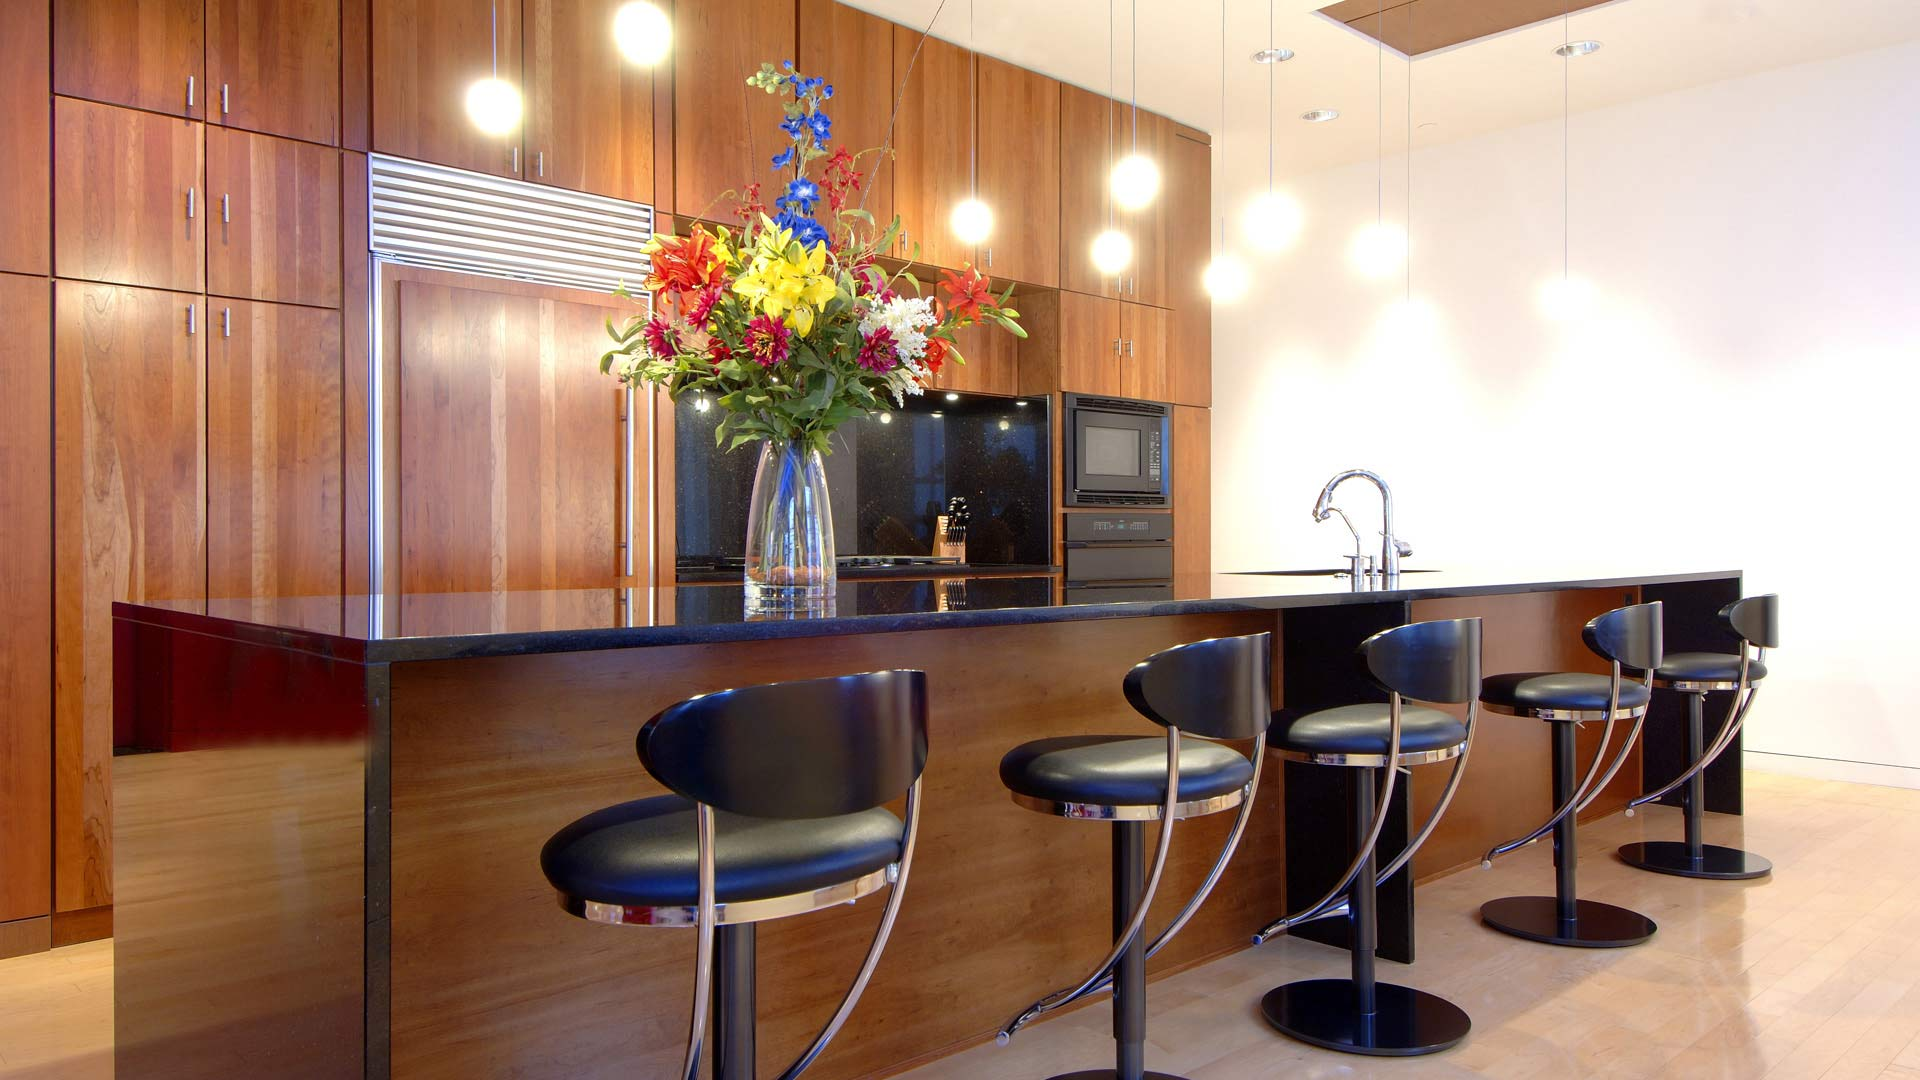 Downtown Urban Modern Penthouse - Galley Kitchen with Cherry Cabinetry - HAUS Architecture, Christopher Short, Indianapolis Architect